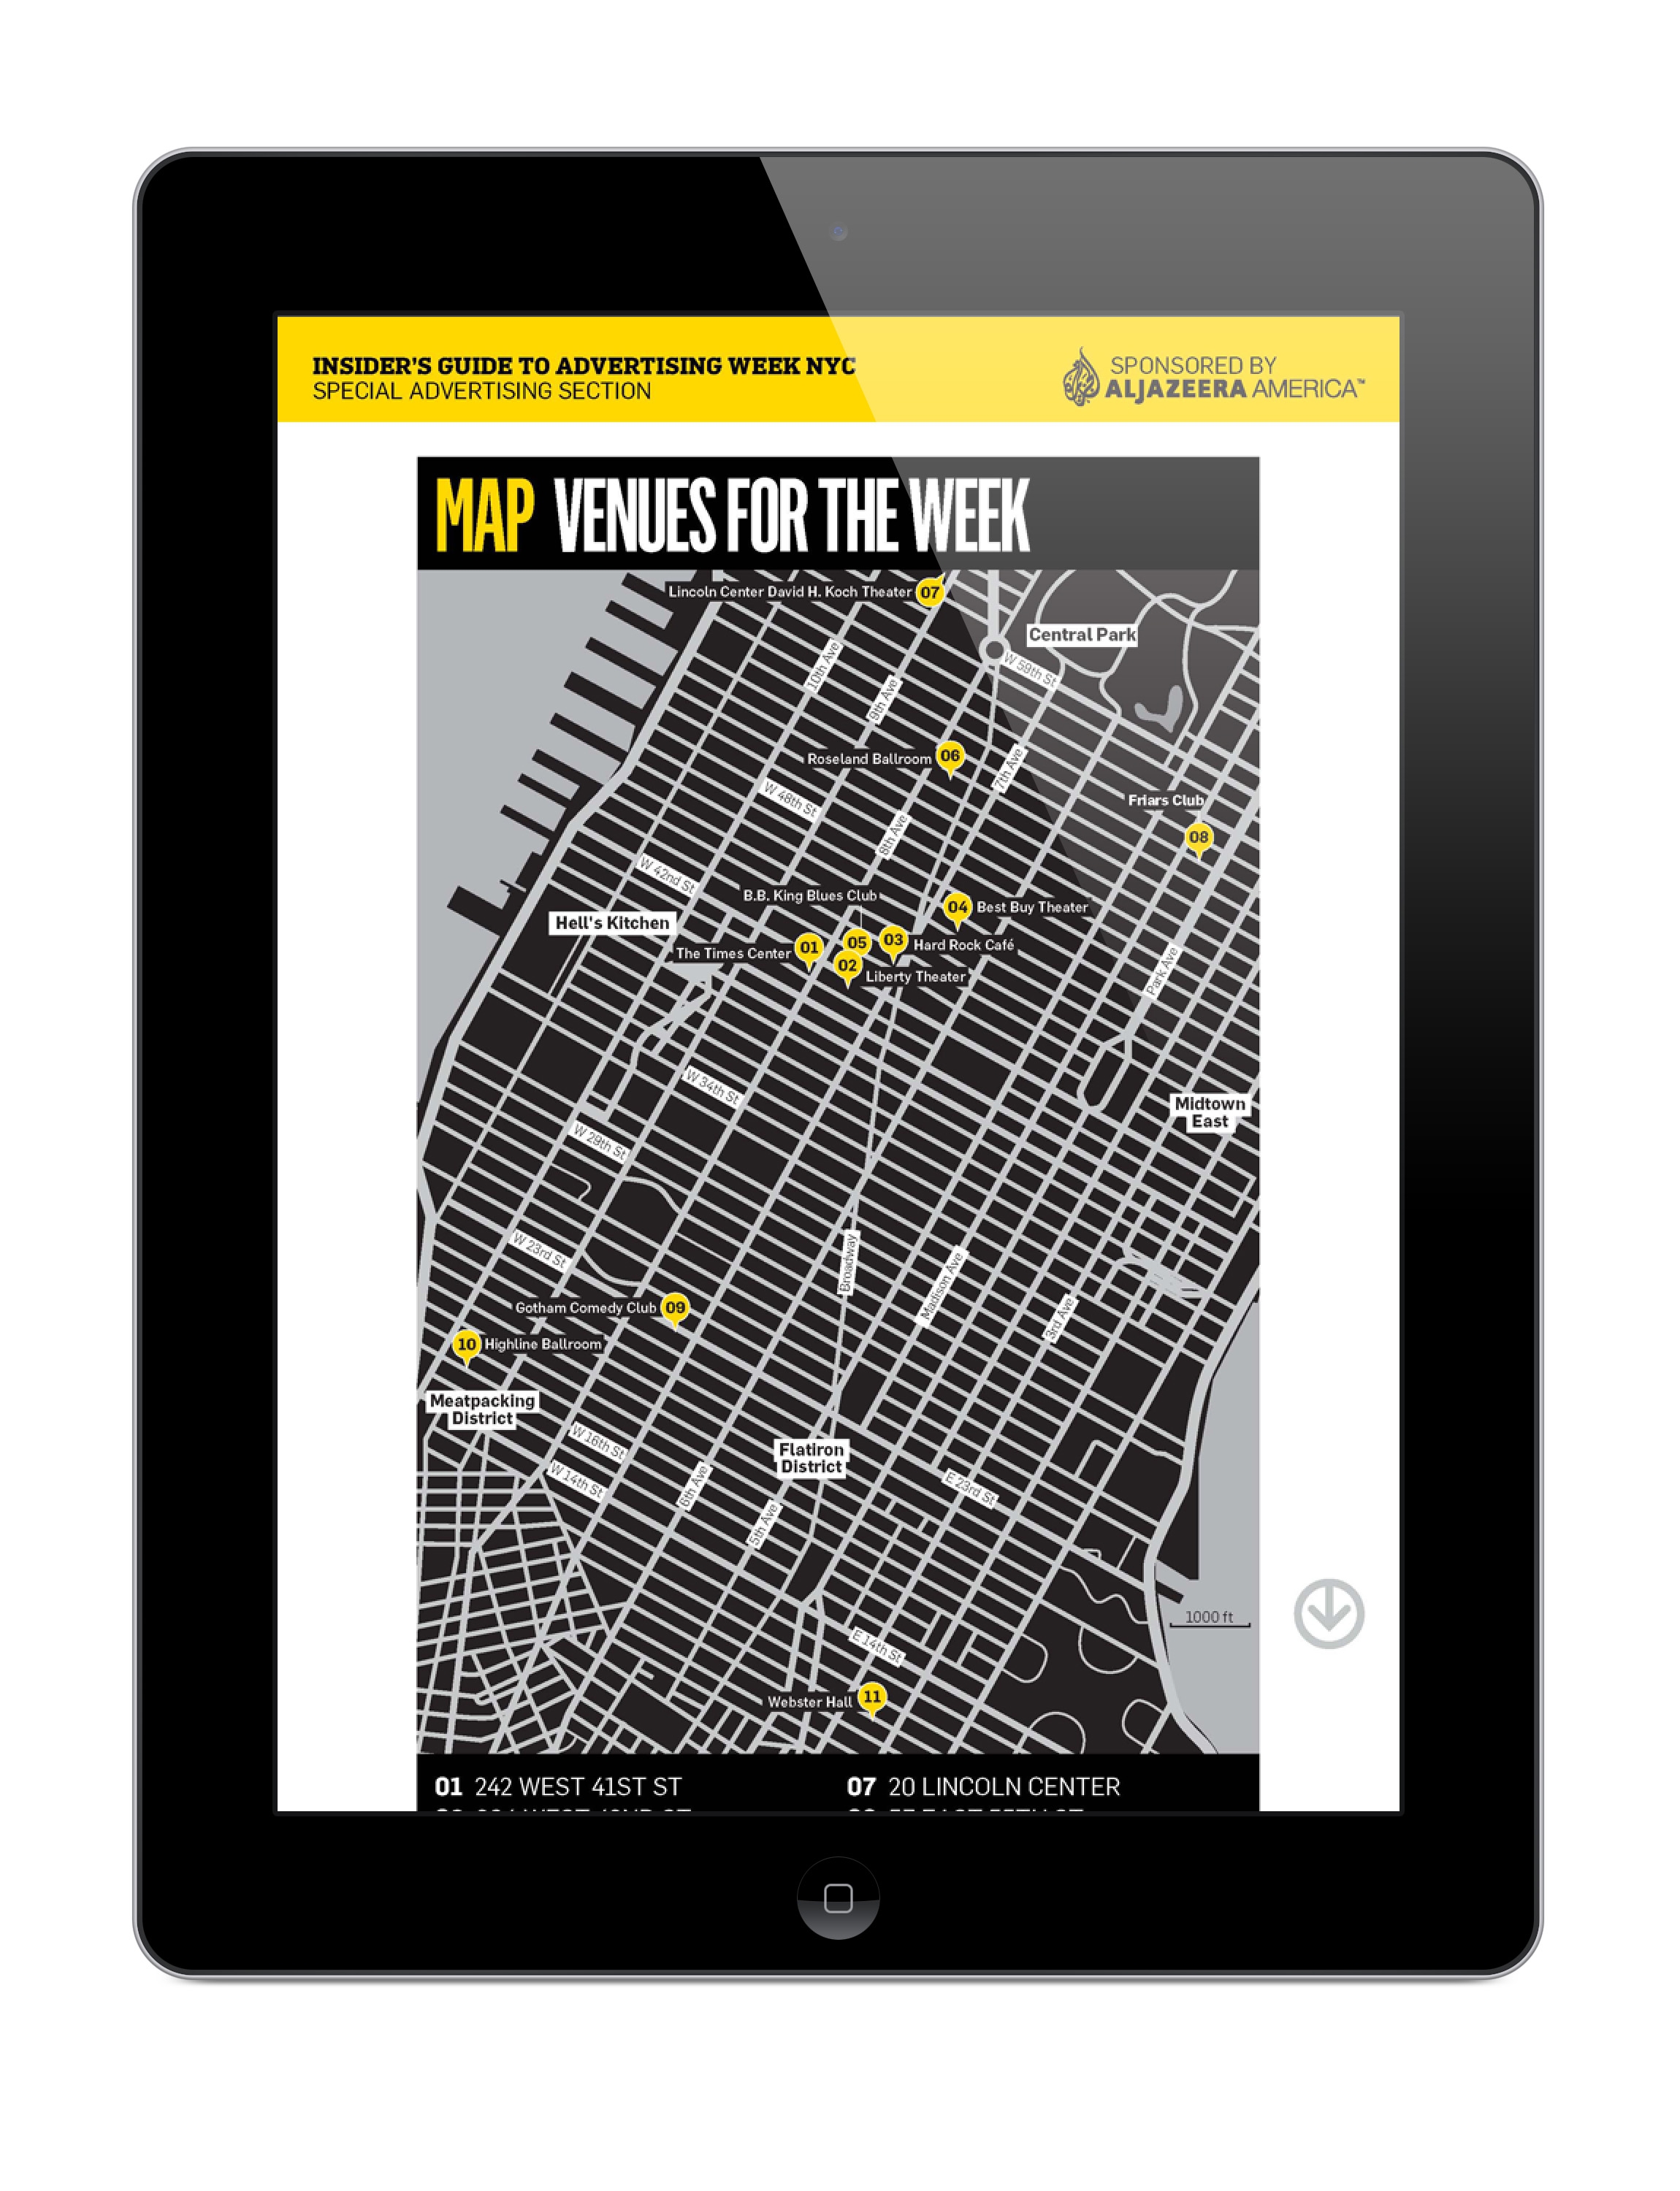 Insider's Guide to Advertising Week NYC